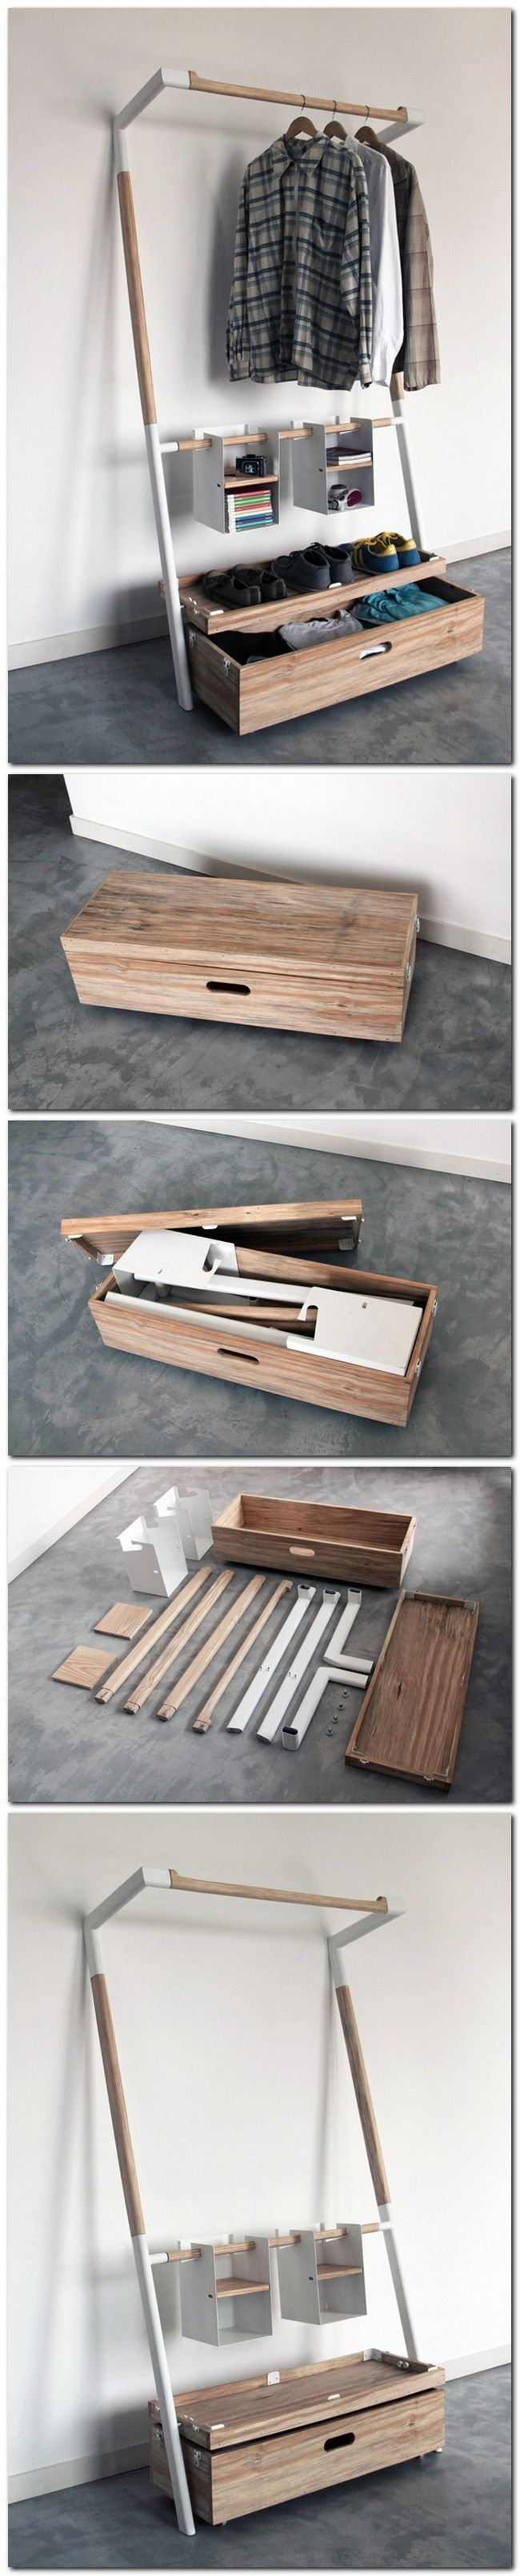 """Arara Nomade"" by Oboio Design Studio. Provides the Tools to Organize Your Wardrobe in a Compact Case. Designing the parts to assemble without the use of tools."